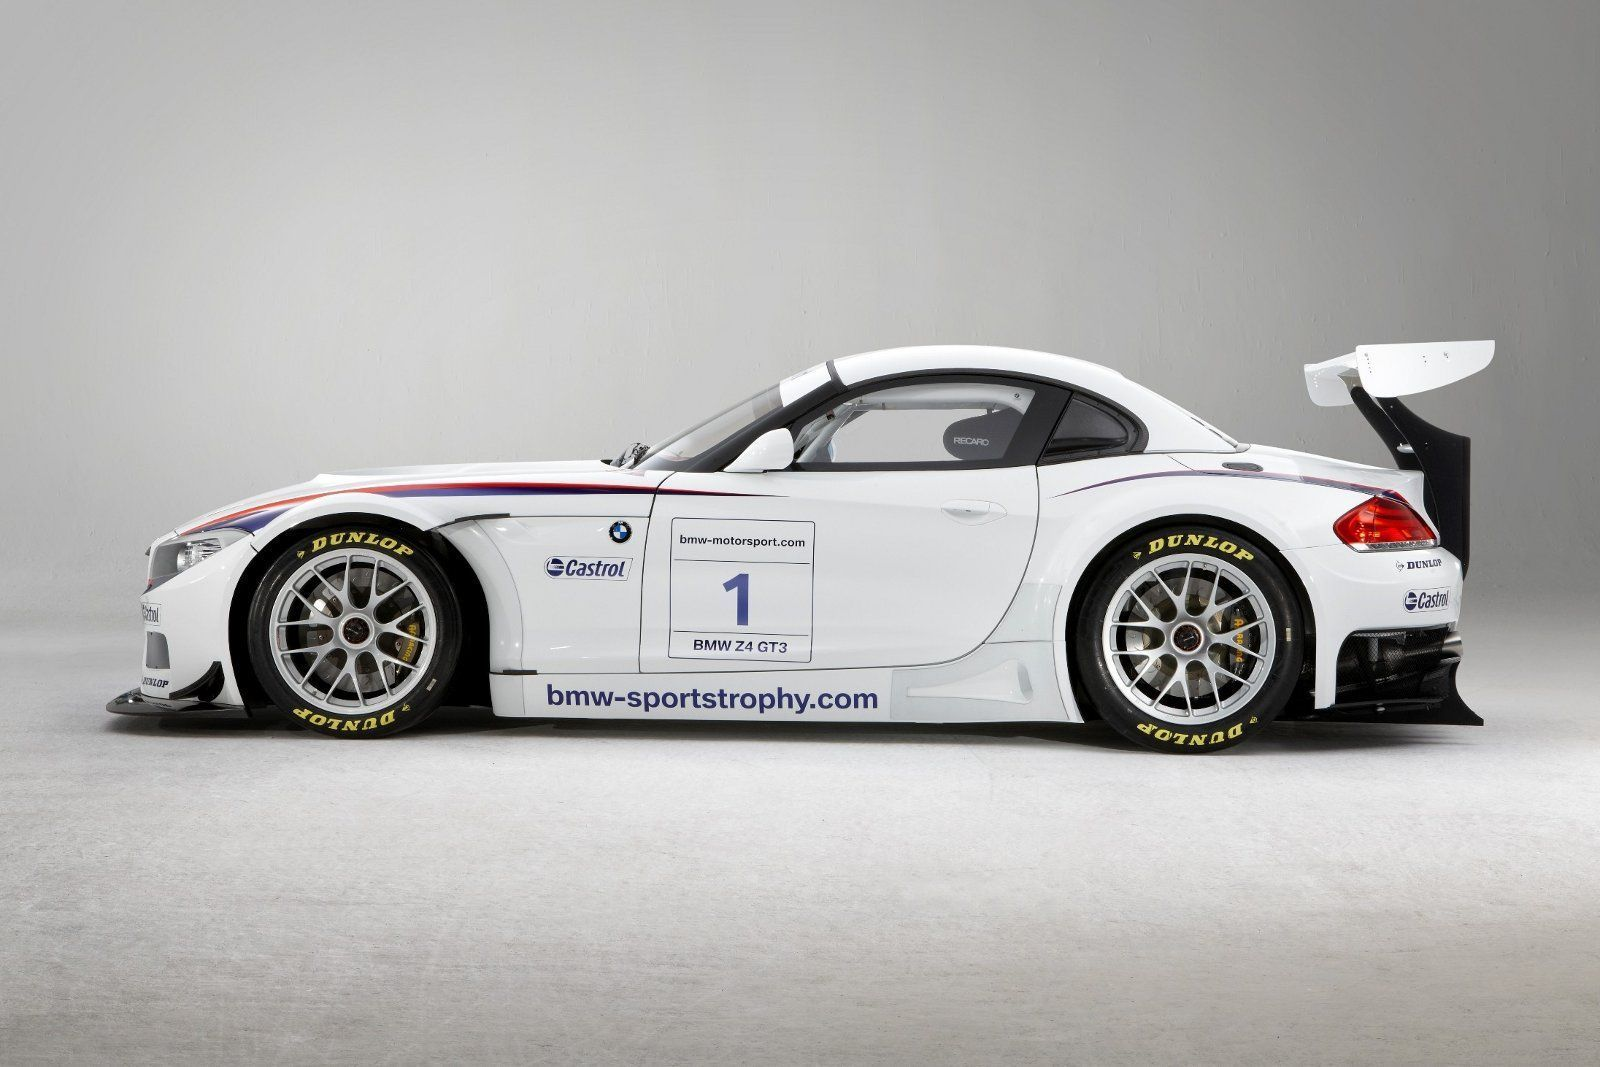 Bmw Images Bmw Z4 Gt3 Race Car Hd Wallpaper And Background